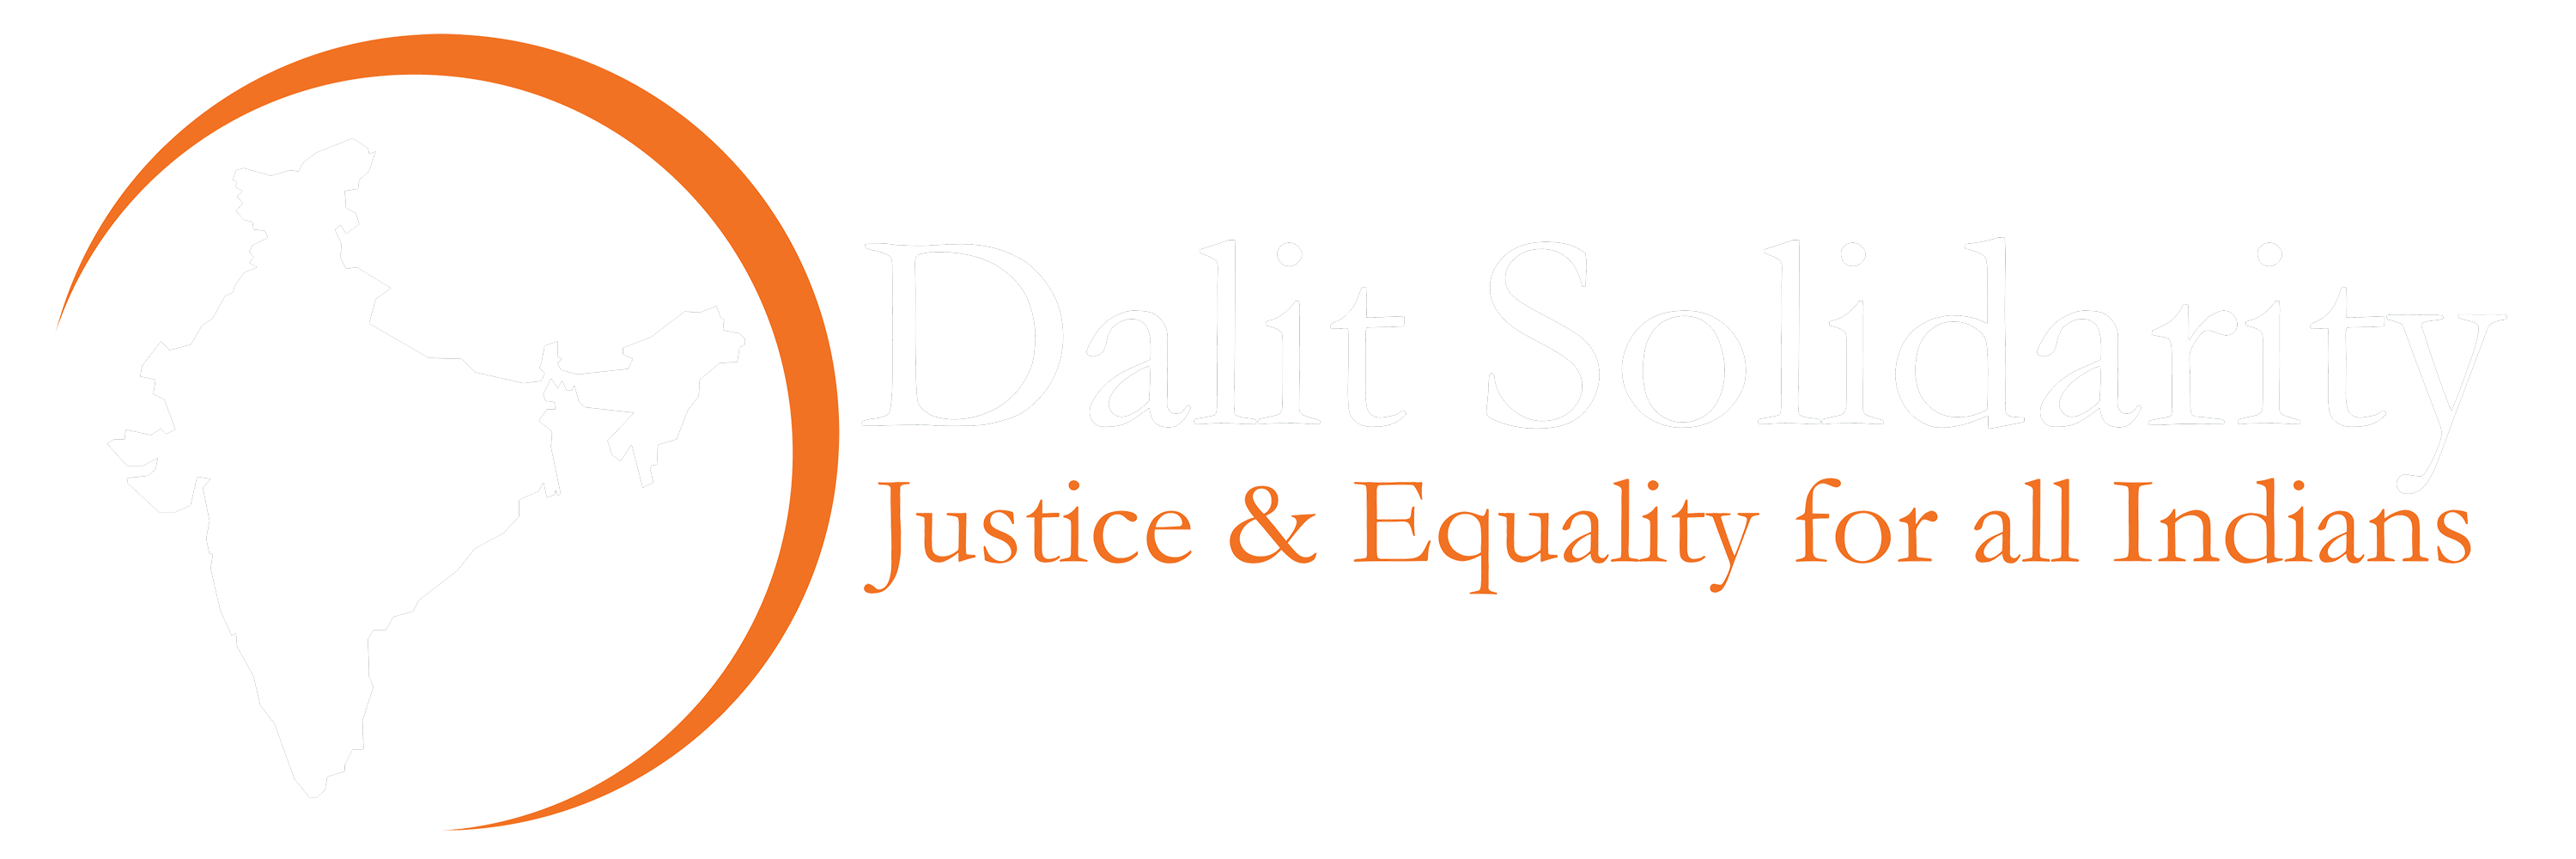 Dalit Solidarity, Inc.